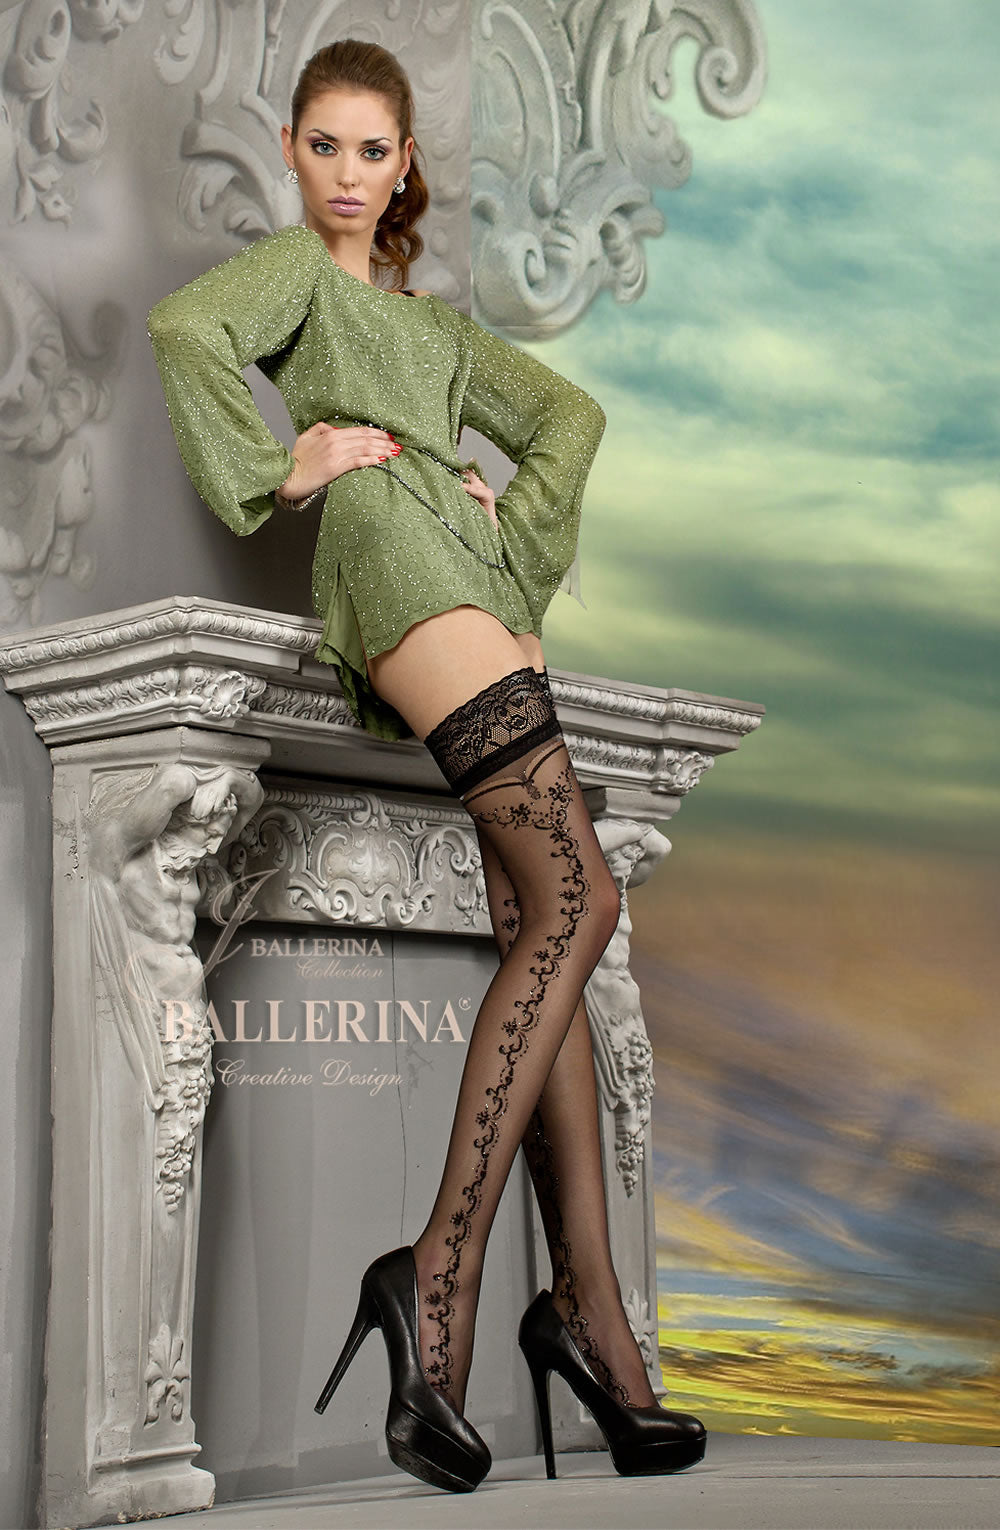 BALLERINA 216 Hold Up Nero (Black) / Lurex  Ballerina, Hold Ups, Hosiery, NEWLY-IMPORTED - So Luxe Lingerie